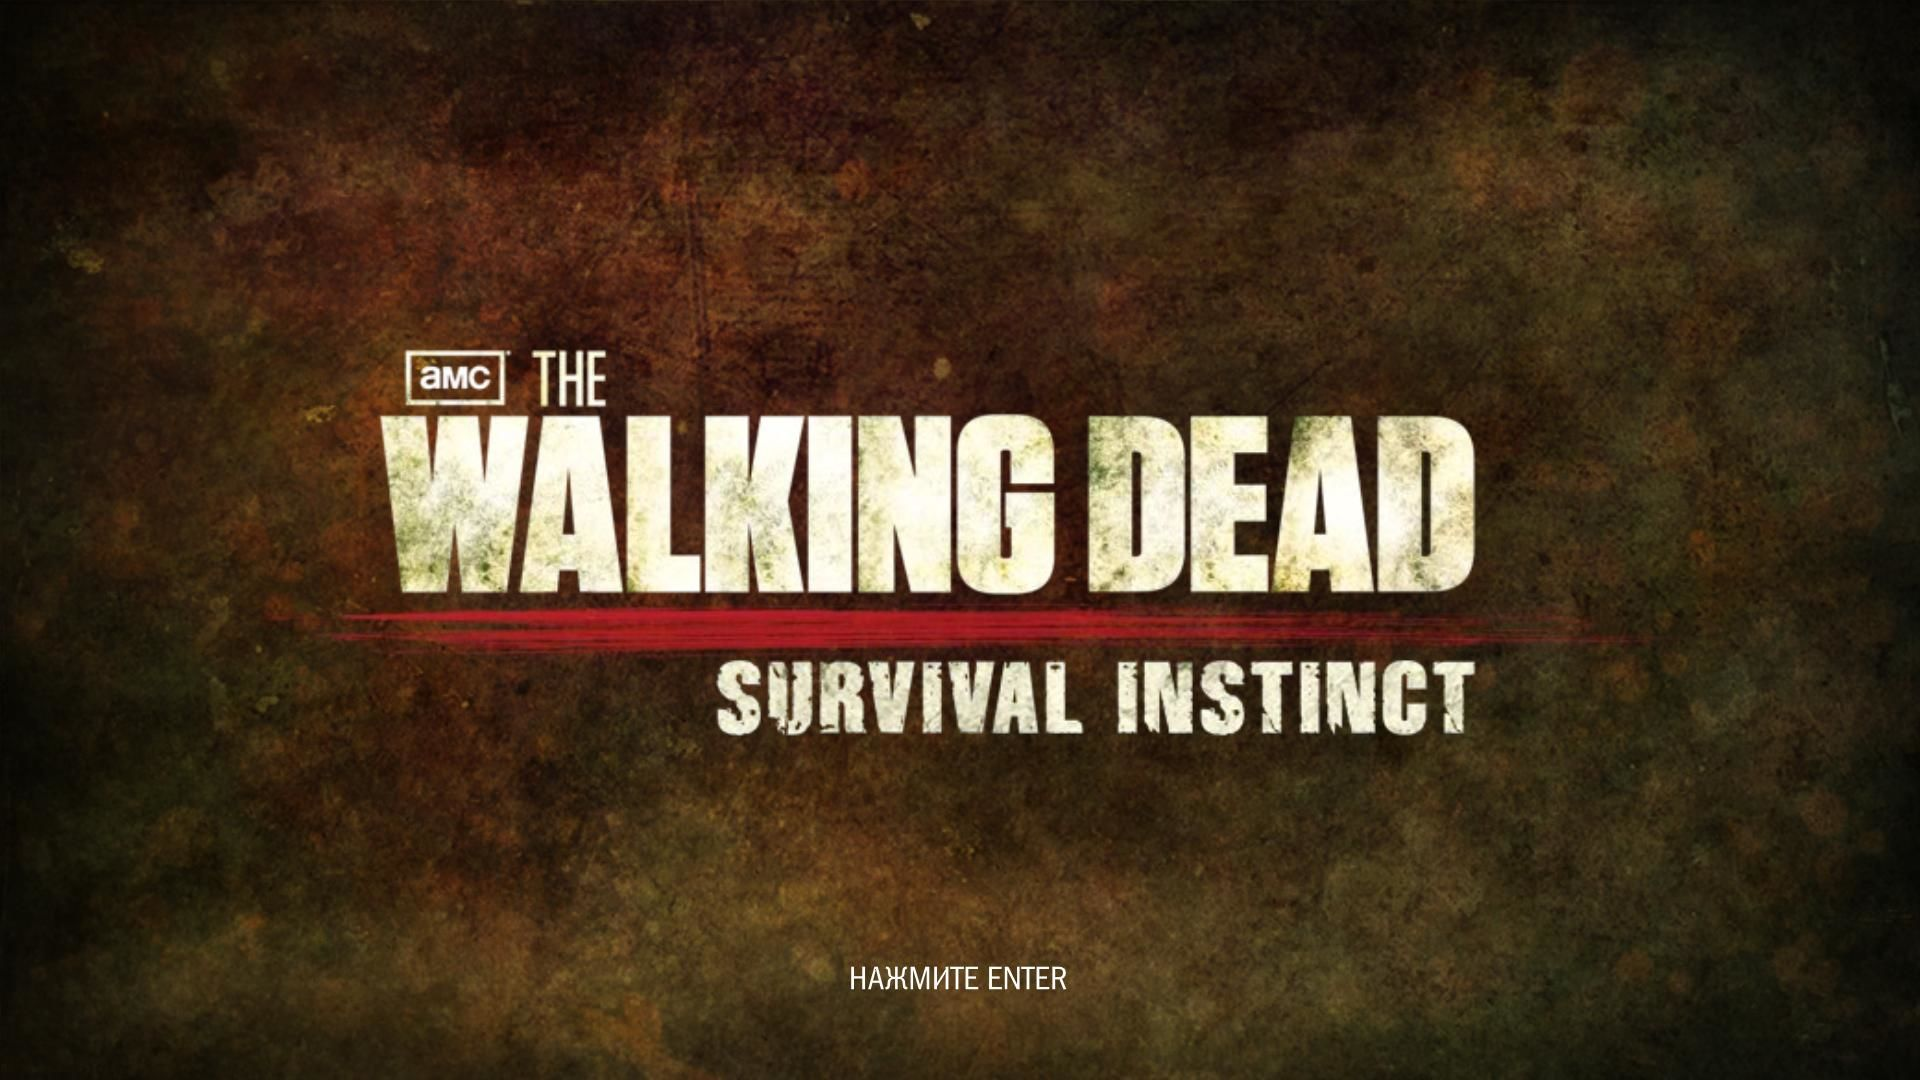 The Walking Dead: Survival Instinct Windows Title Screen (in Russian)